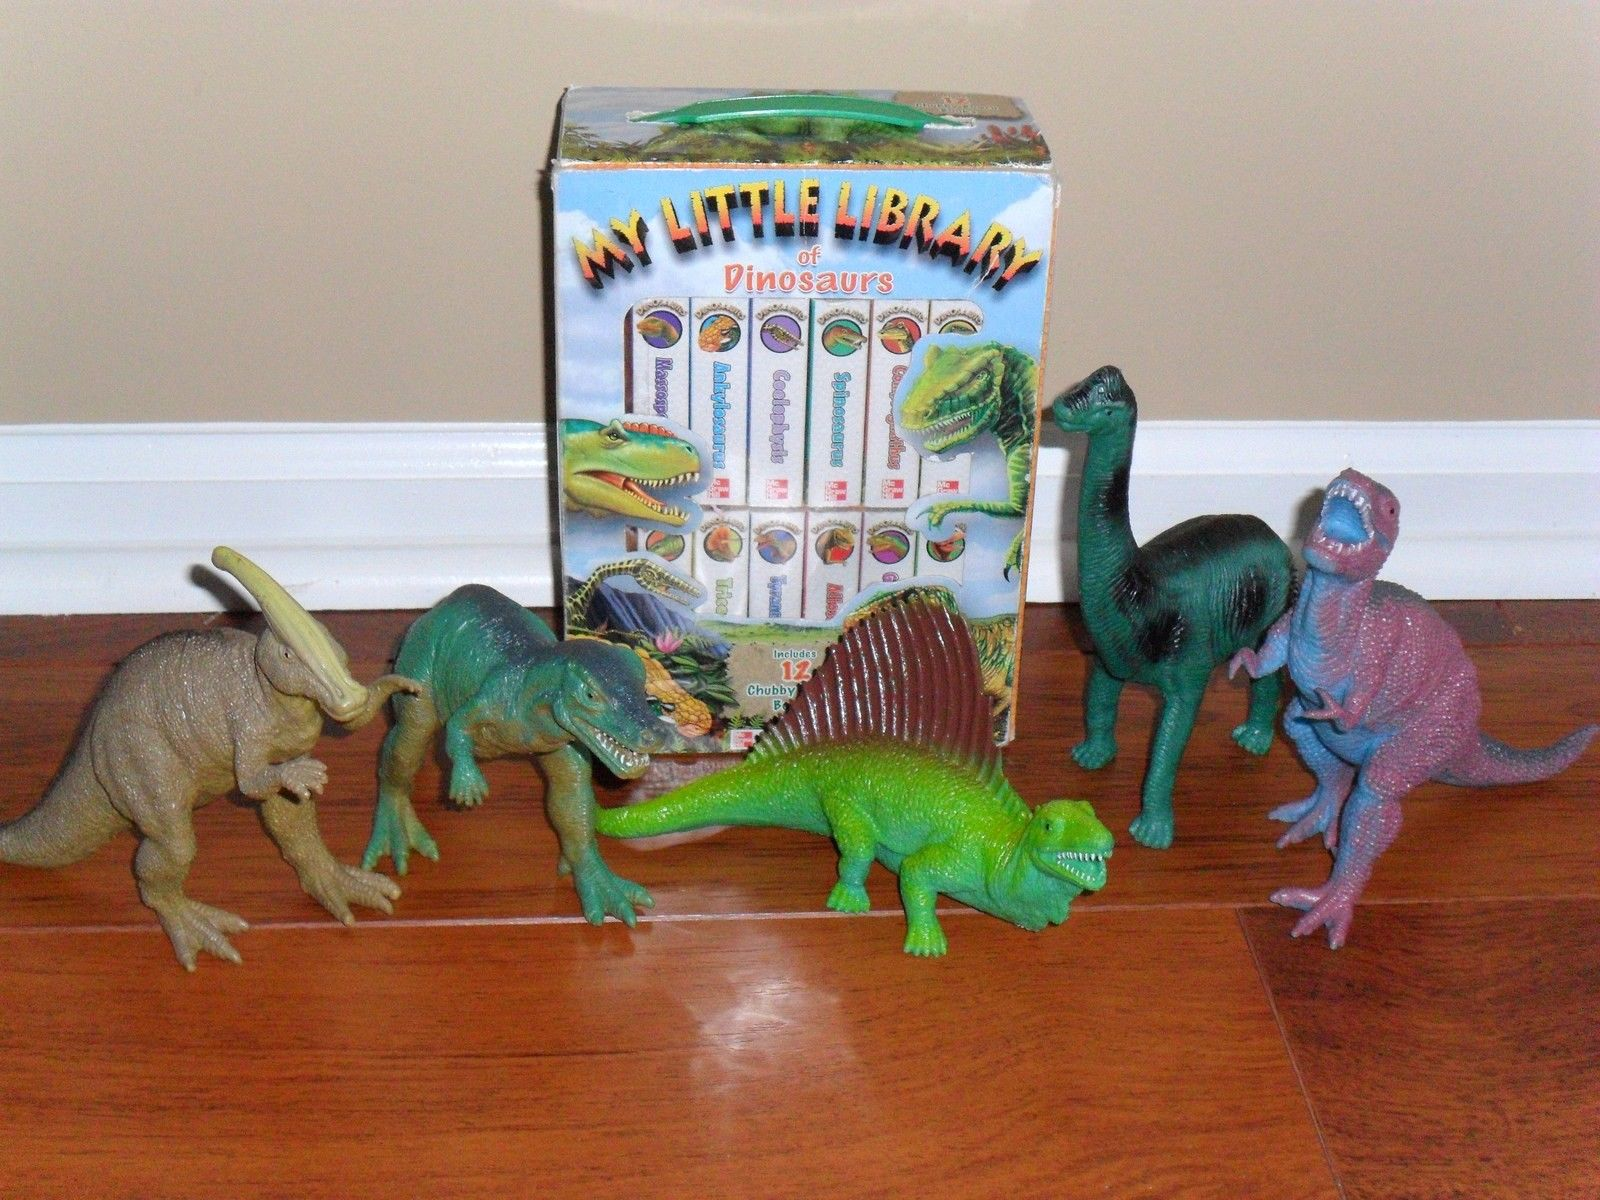 DINOSAUR Collection 12 Board Books and 5 Dino Figurines Stegosaurus Triceratops